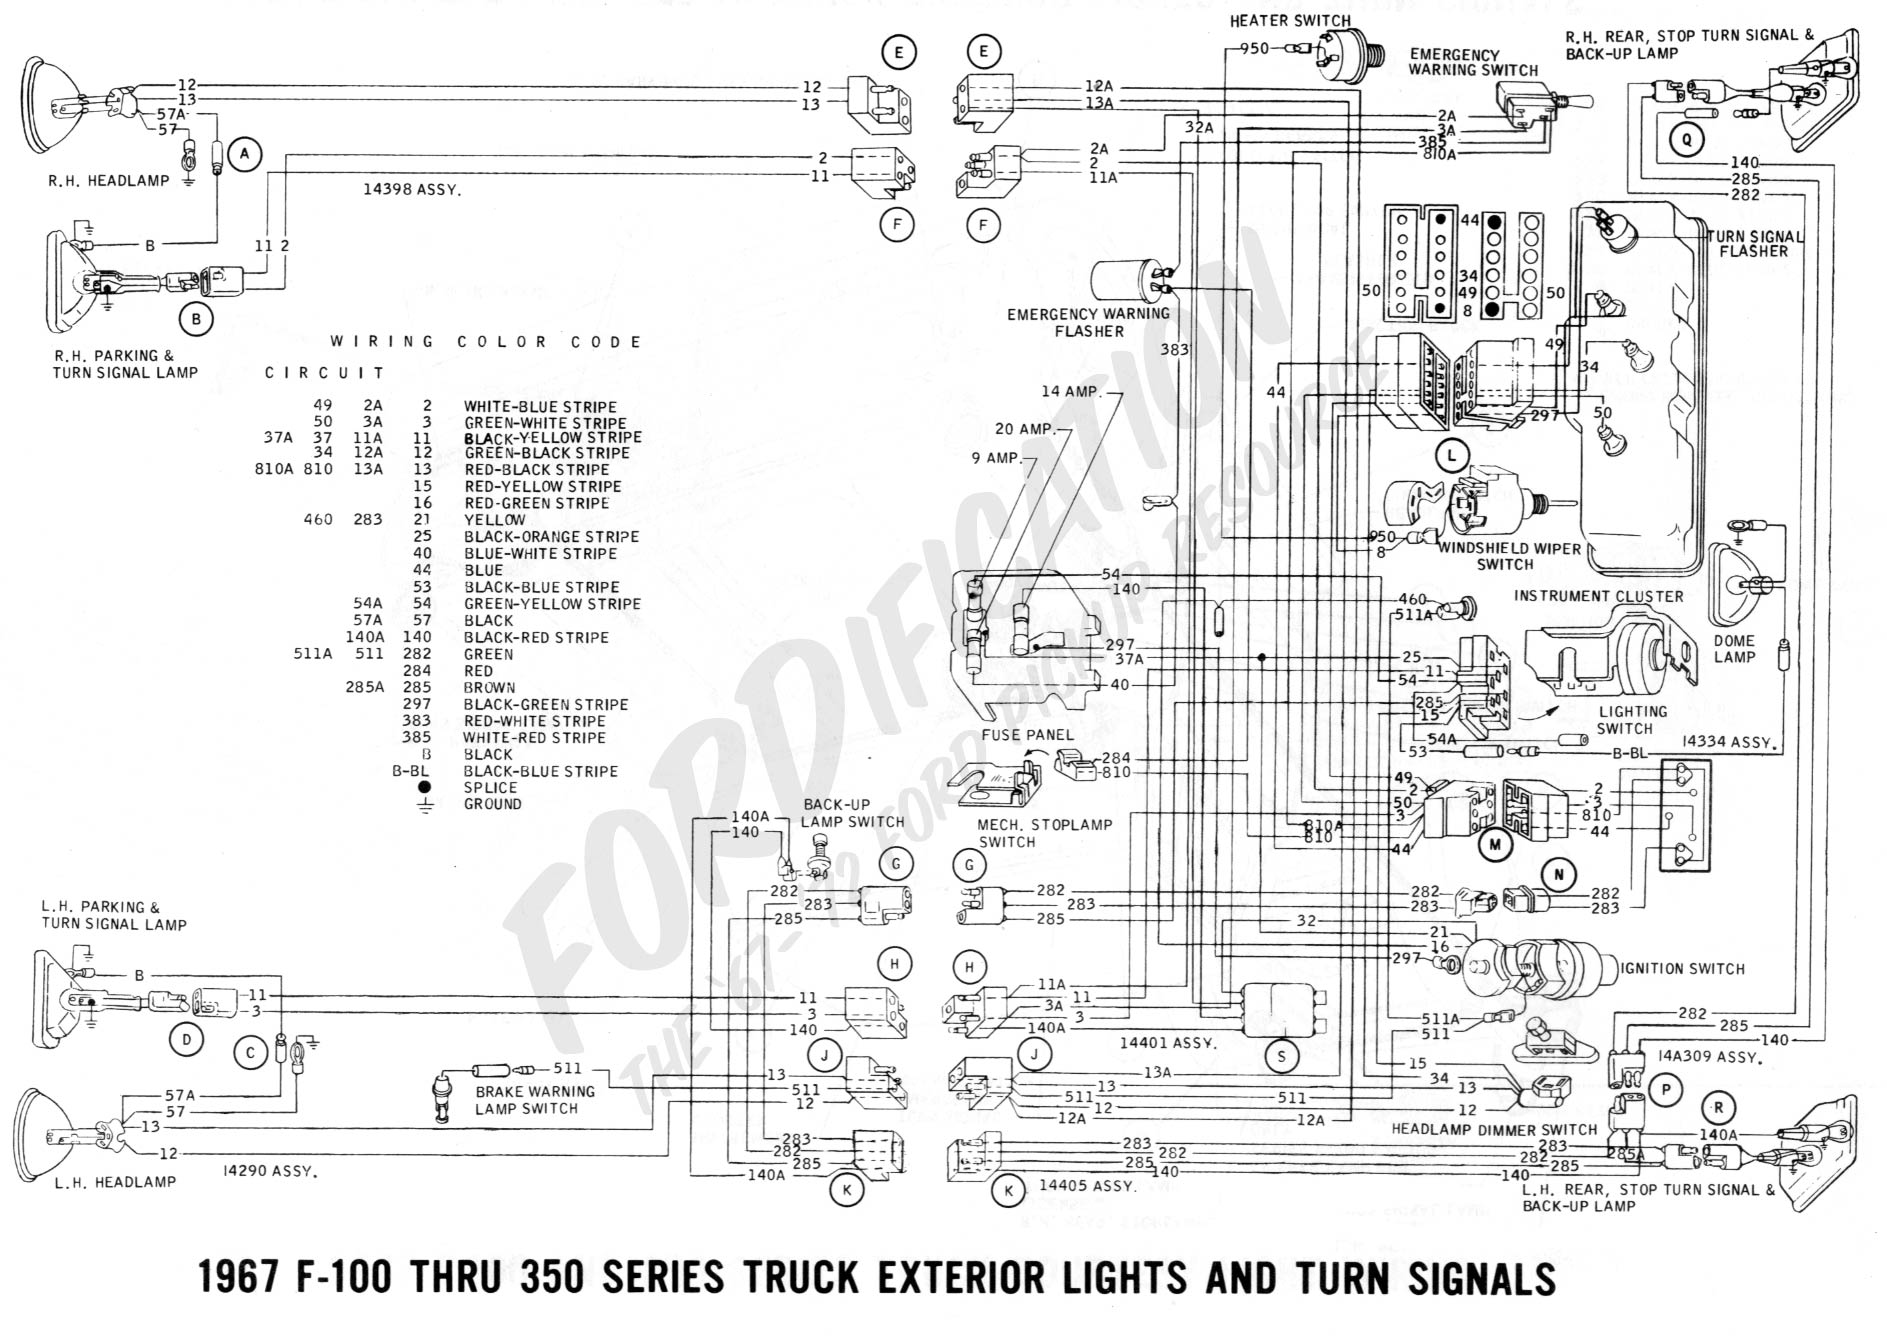 92 mustang turn signal wiring diagram detailed schematics diagram 2000 ford  e150 fuse box diagram 02